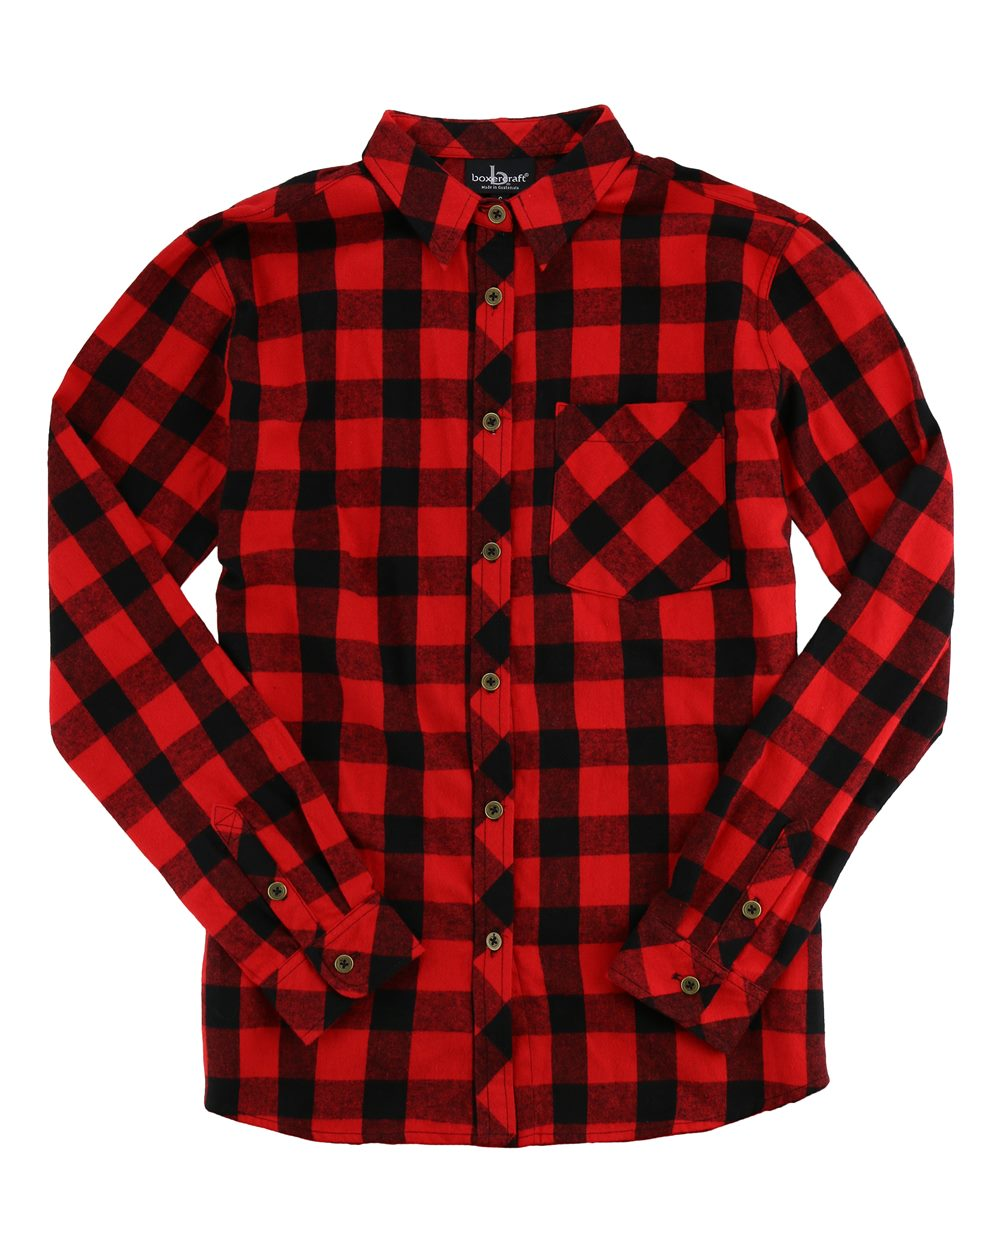 Boxercraft YF51 - Youth Flannel Shirt